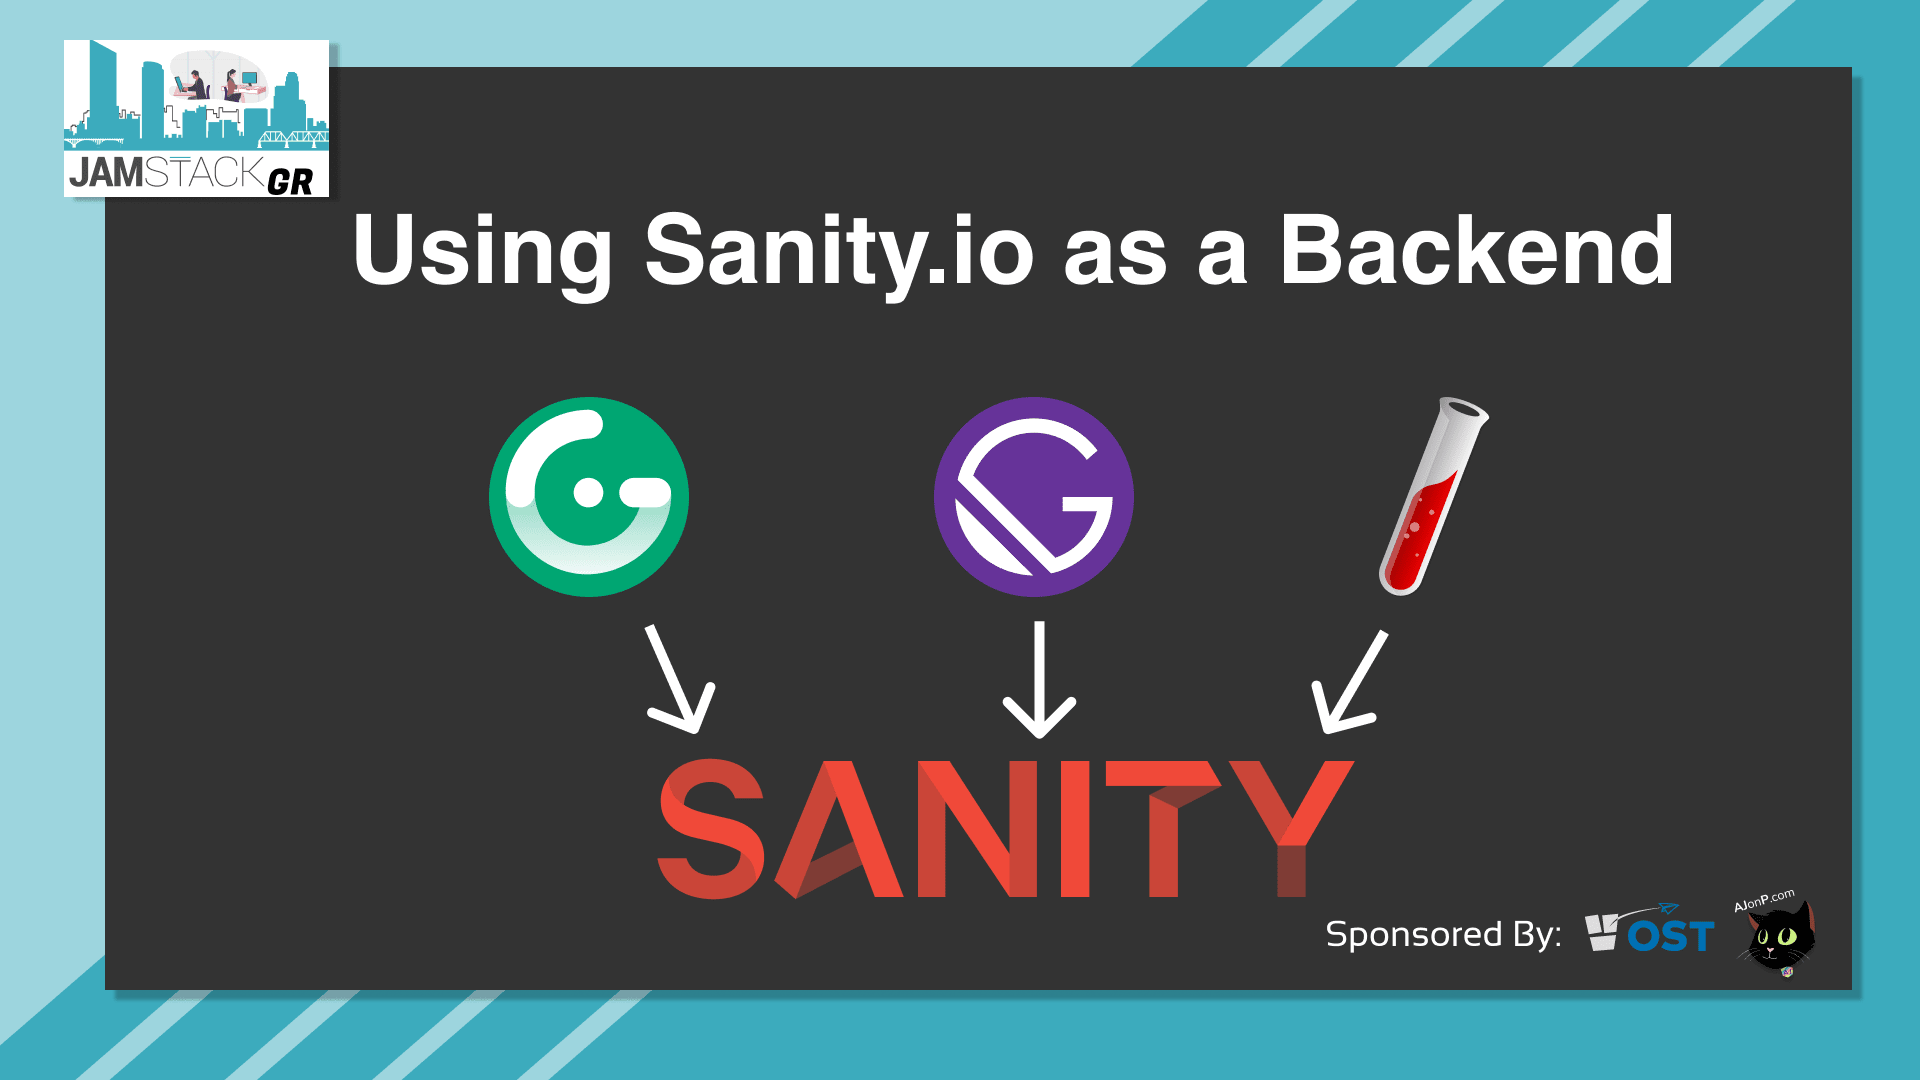 JAMStackGR #1-Sanity.io as a Backend